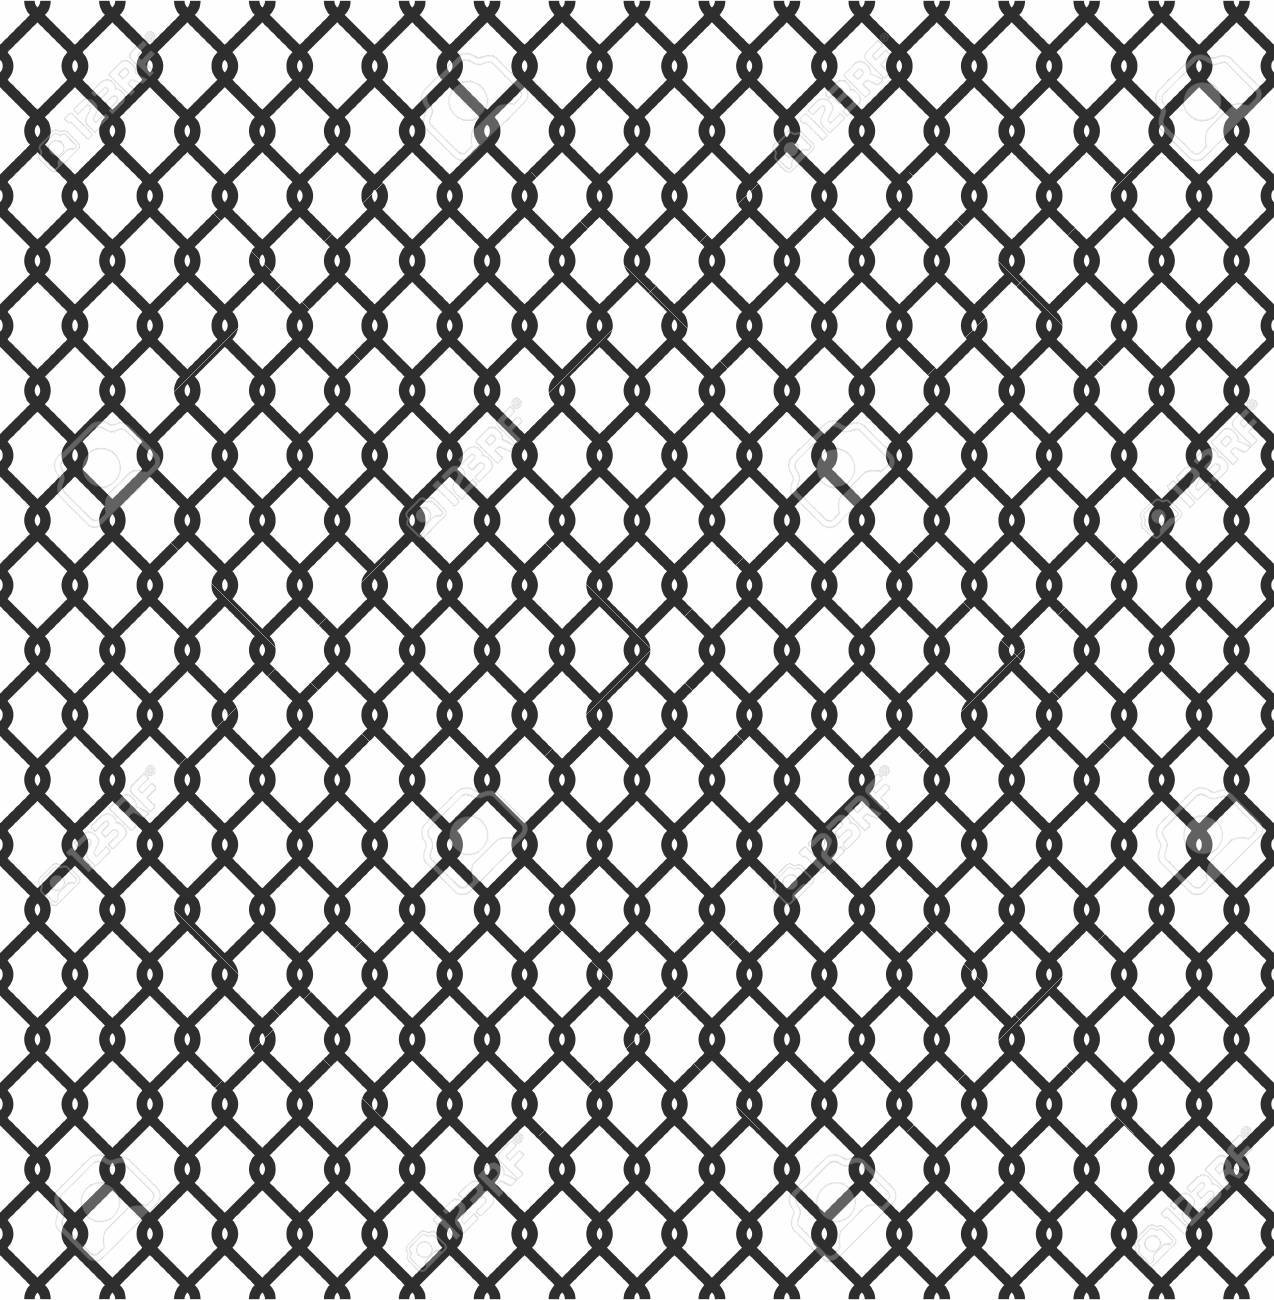 Metallic Wired Fence Seamless Pattern Isolated On White Background ...